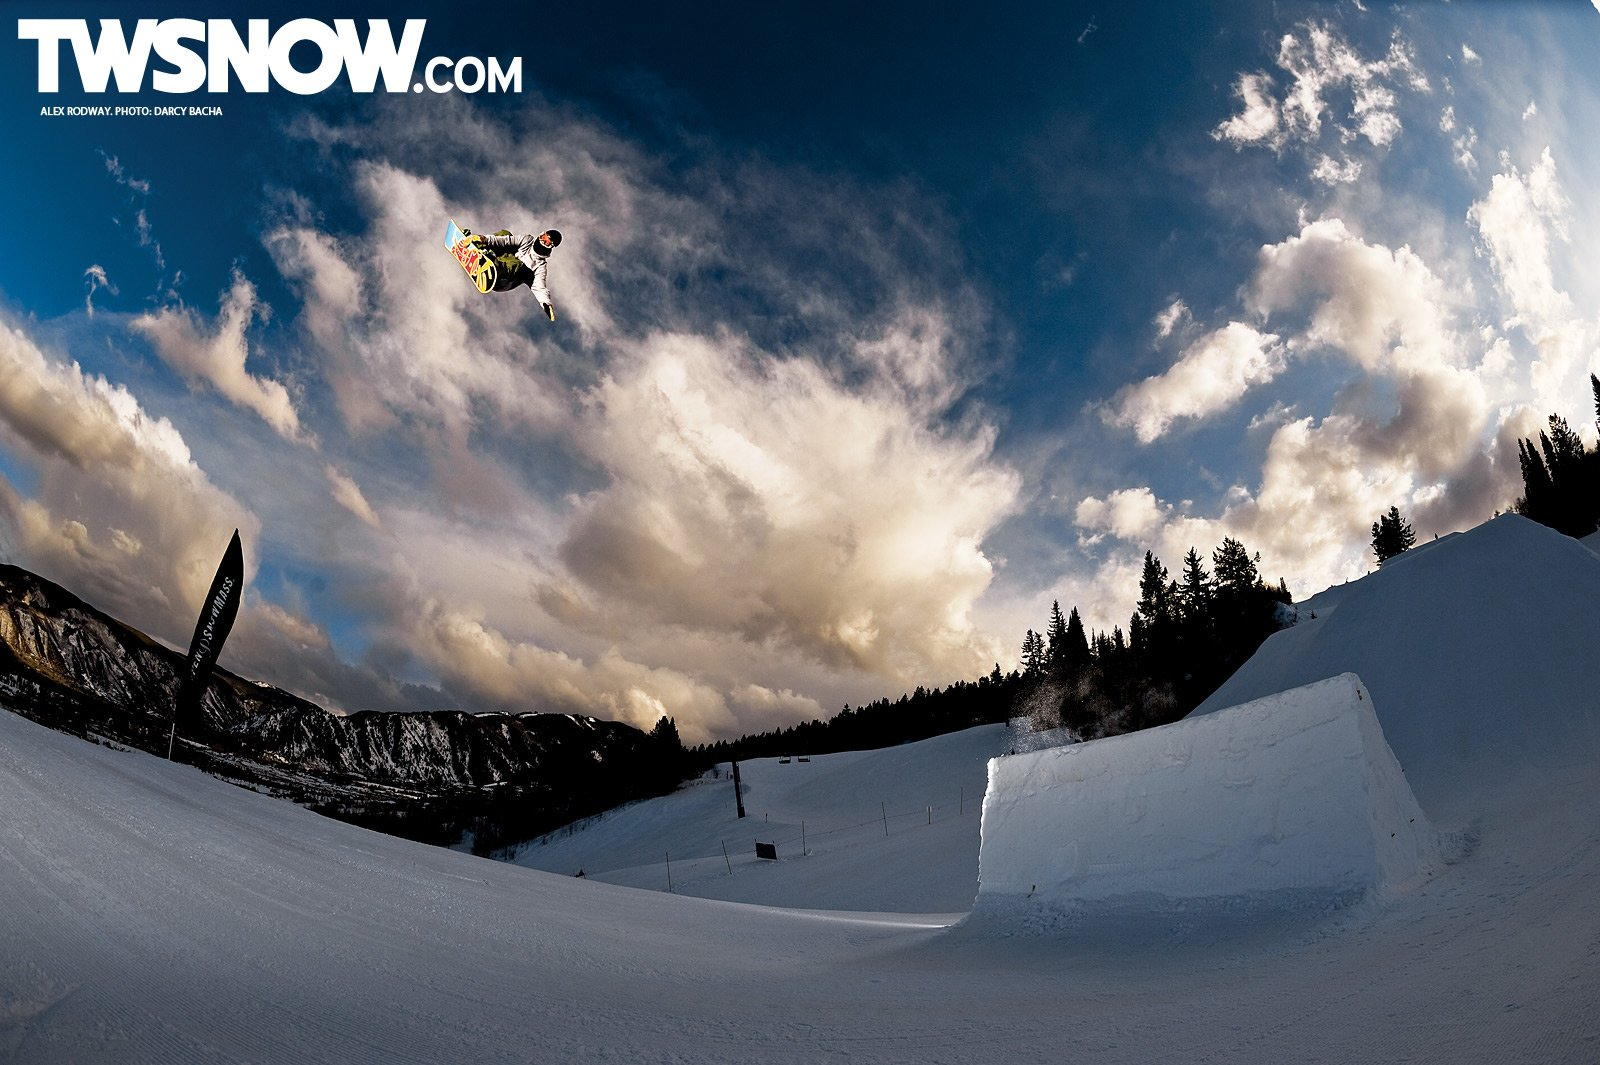 Wallpaper Wednesday Long Live Park Jumps TransWorld SNOWboarding 1600x1065